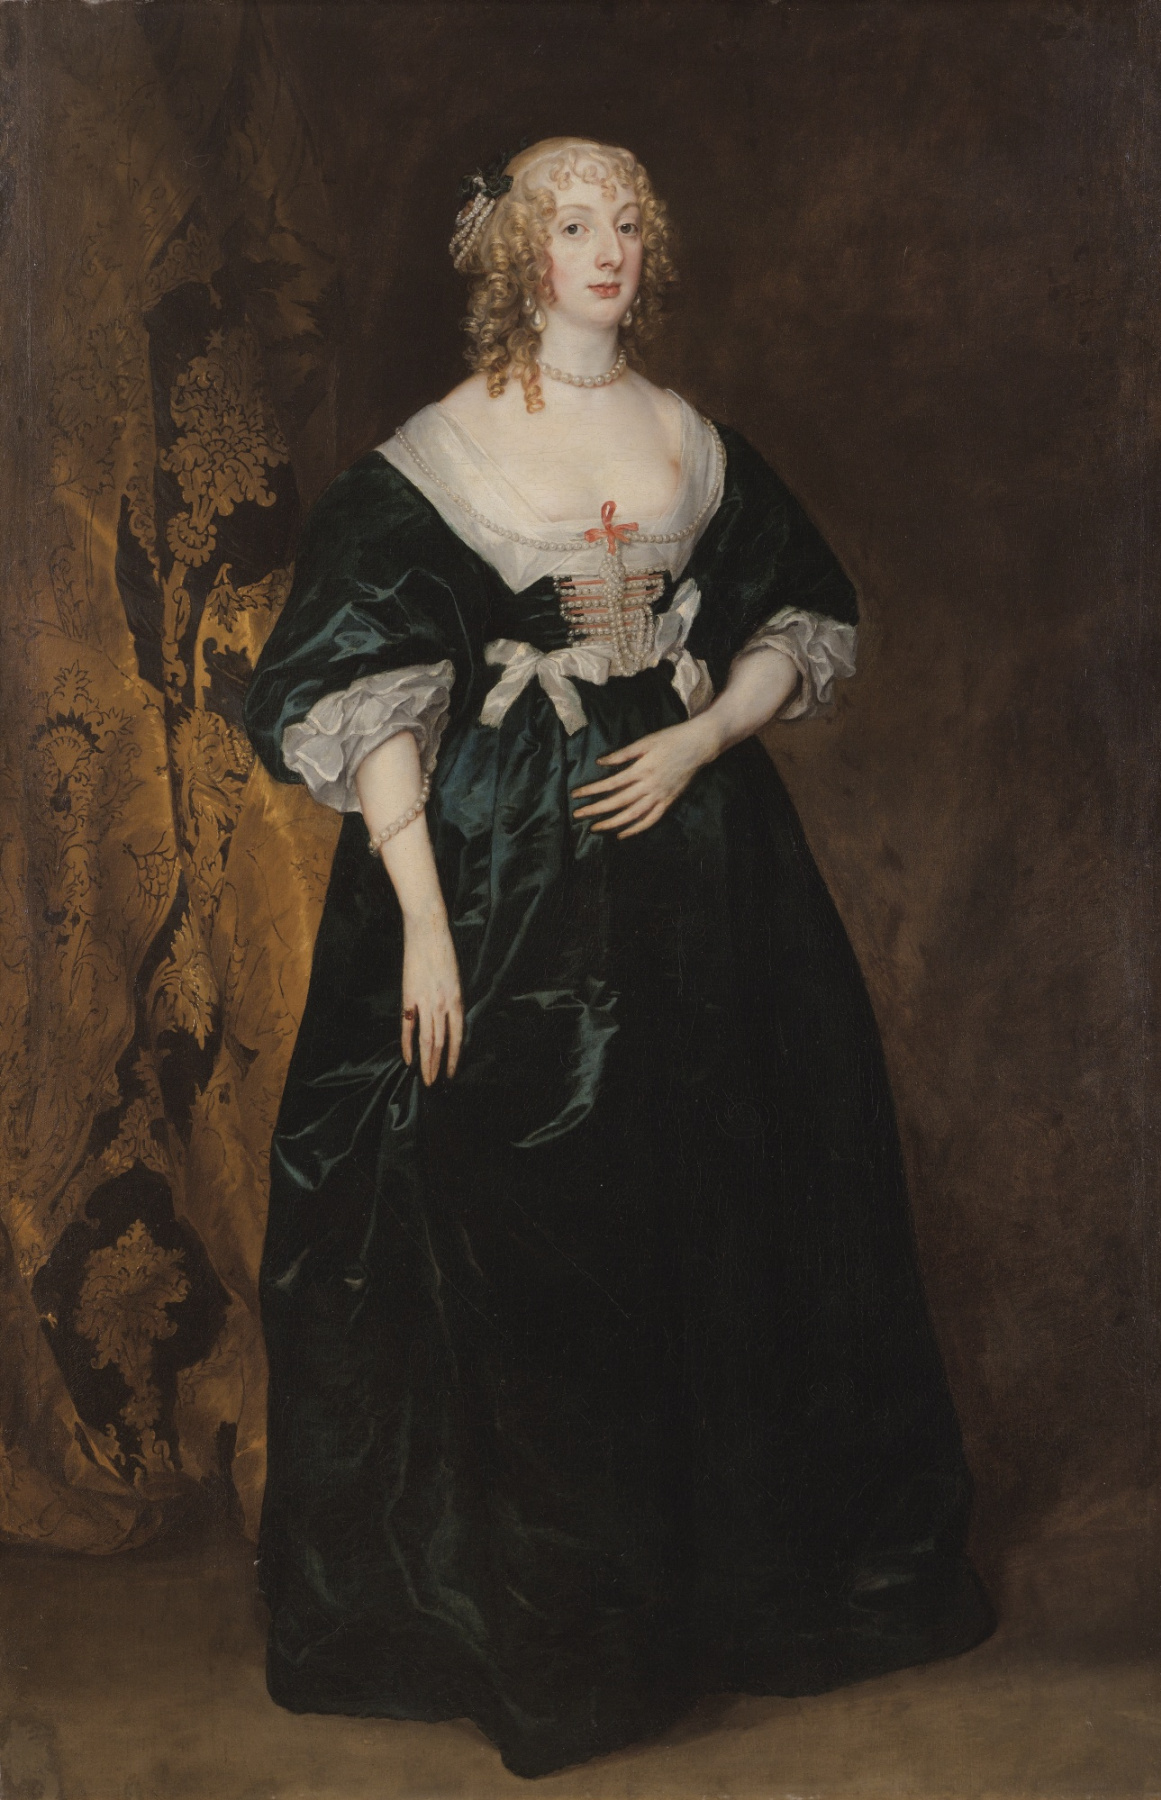 Anthony van Dyck. Portrait of Anne Sophia, Countess of Carnarvon